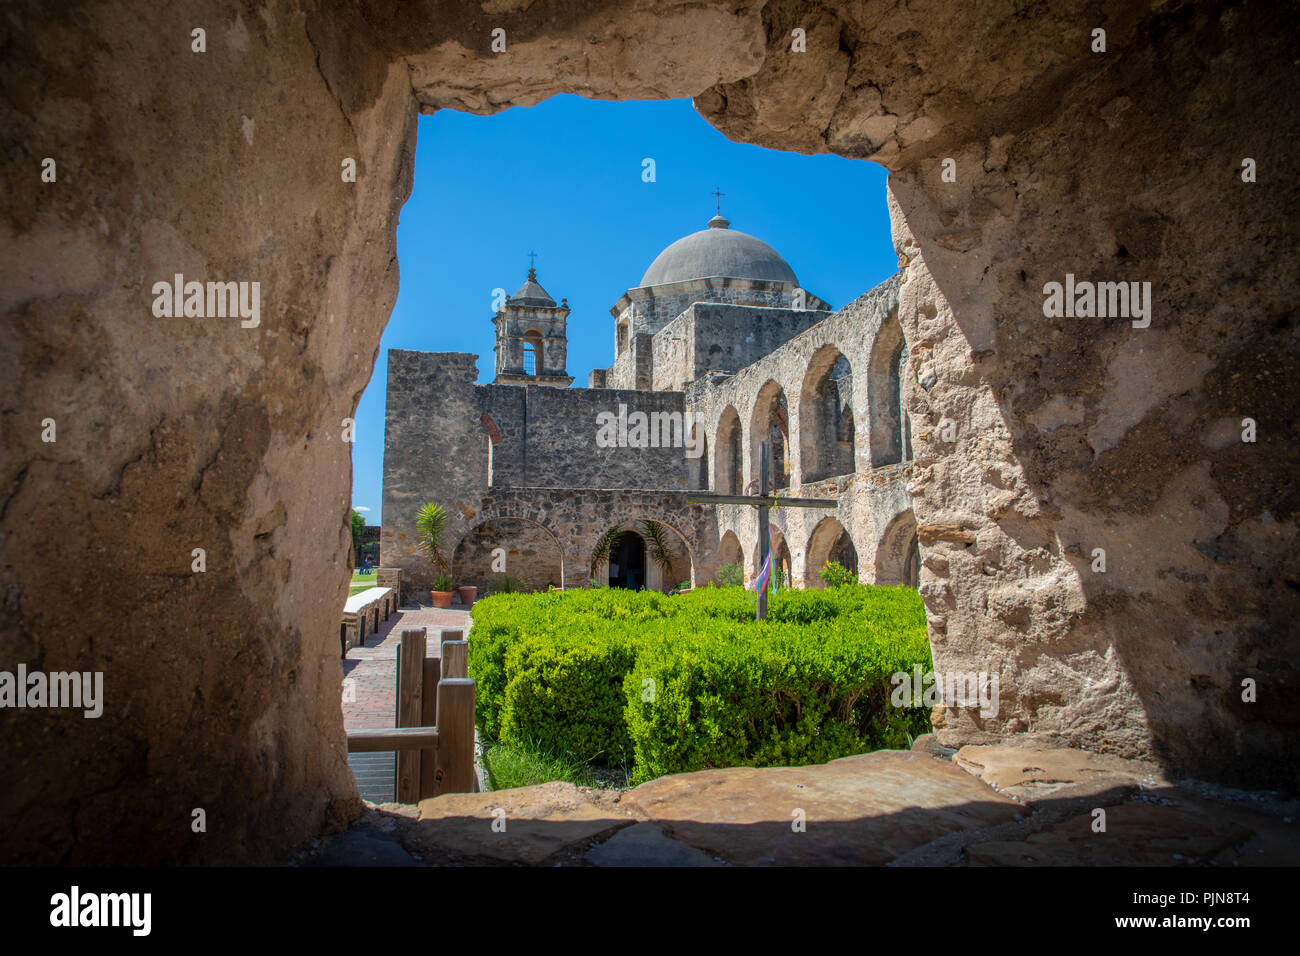 Mission San José y San Miguel de Aguayo is a historic Catholic mission in San Antonio, Texas, USA. - Stock Image